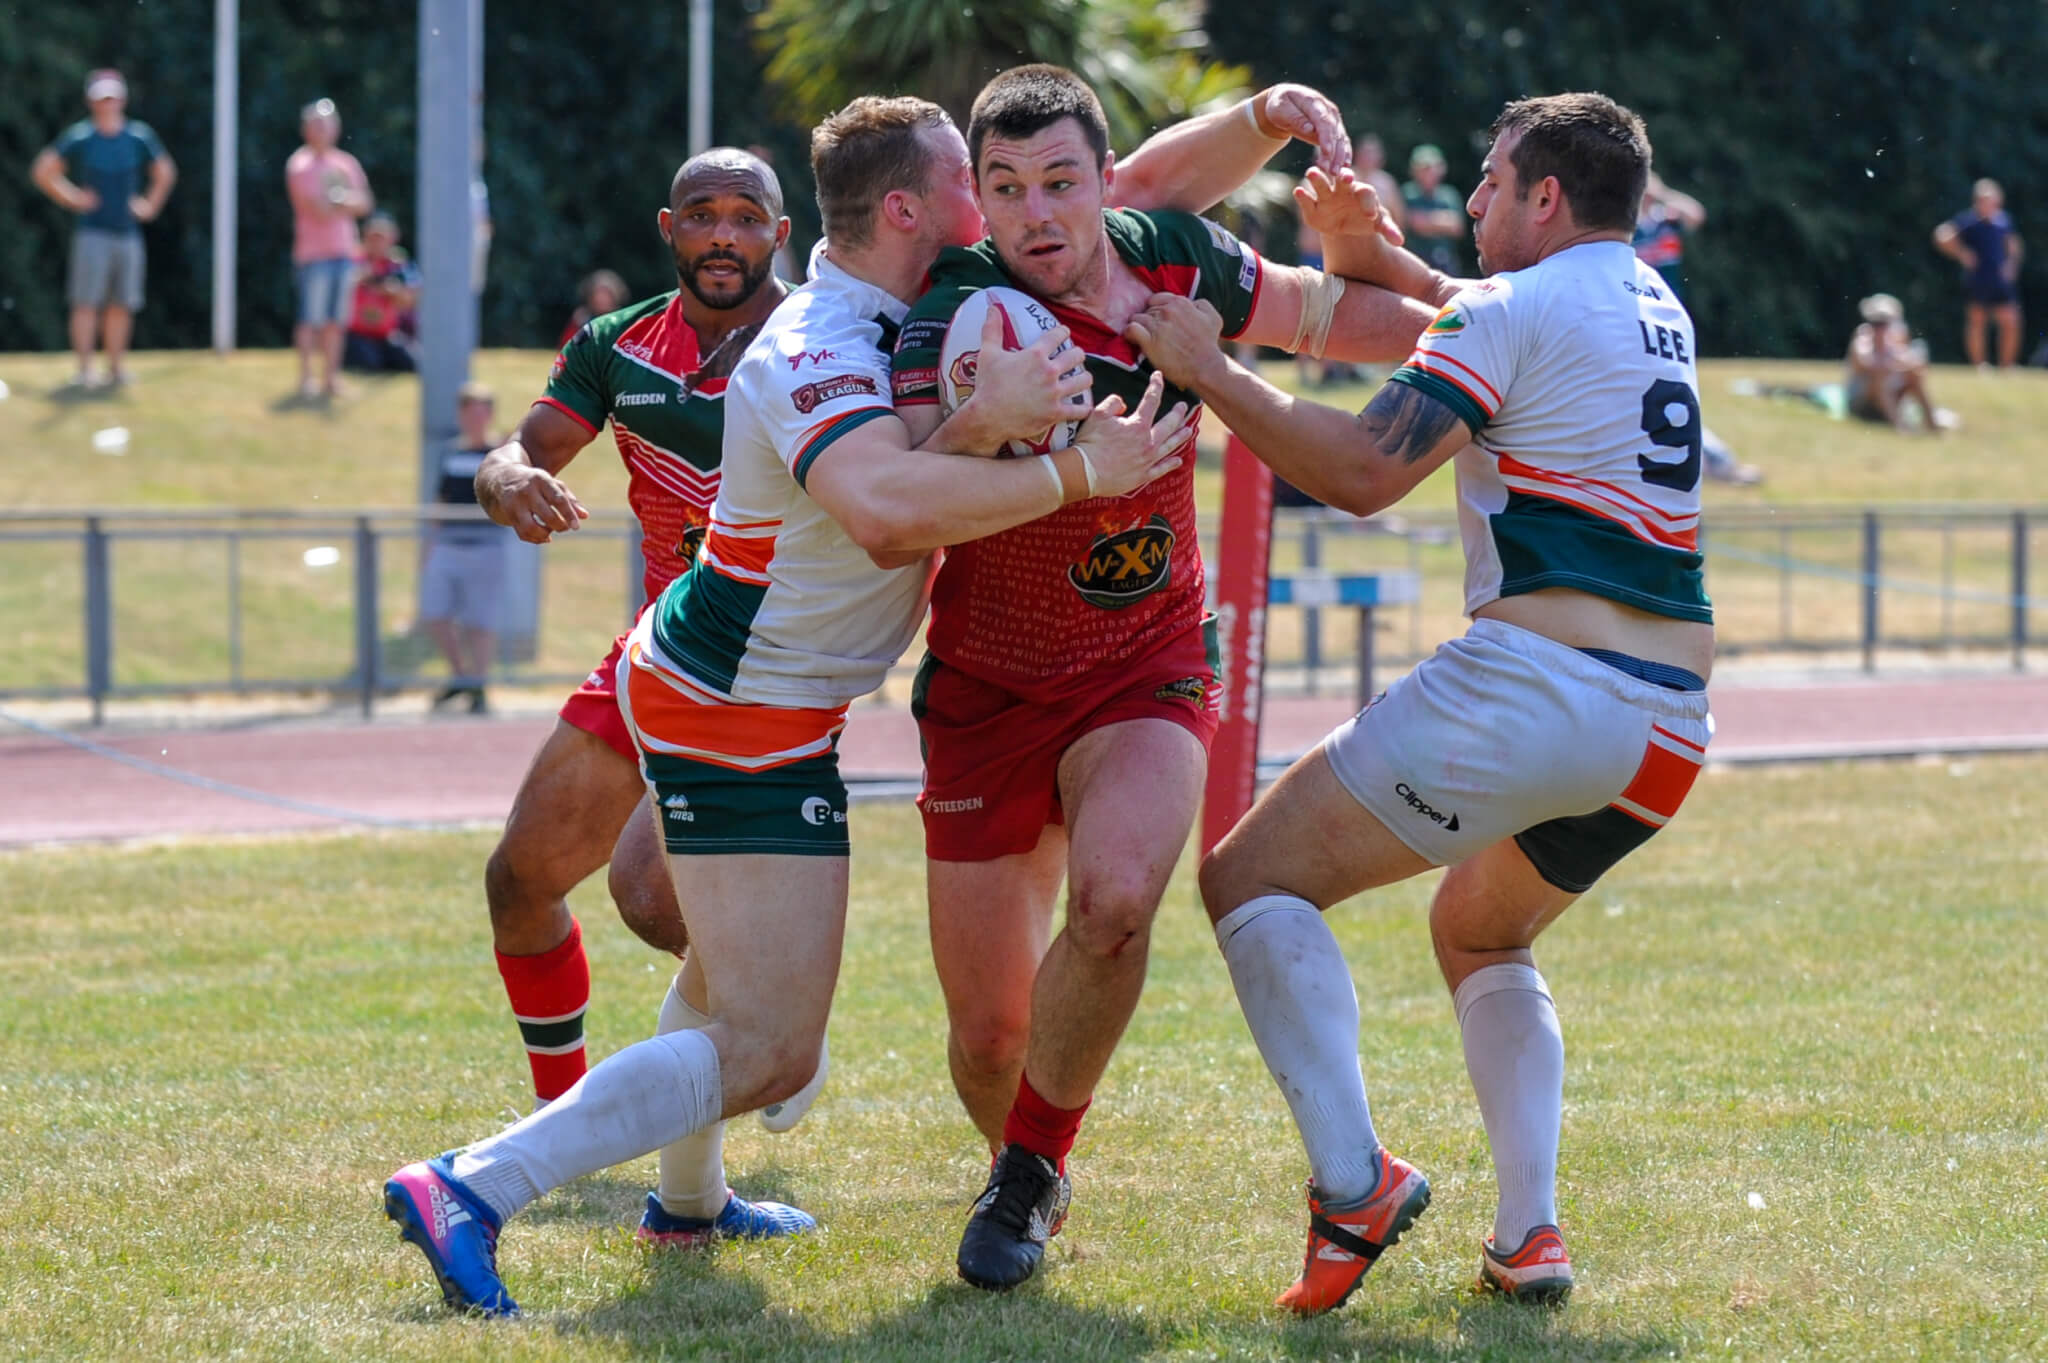 Crusaders' 19-man squad for Hunslet match